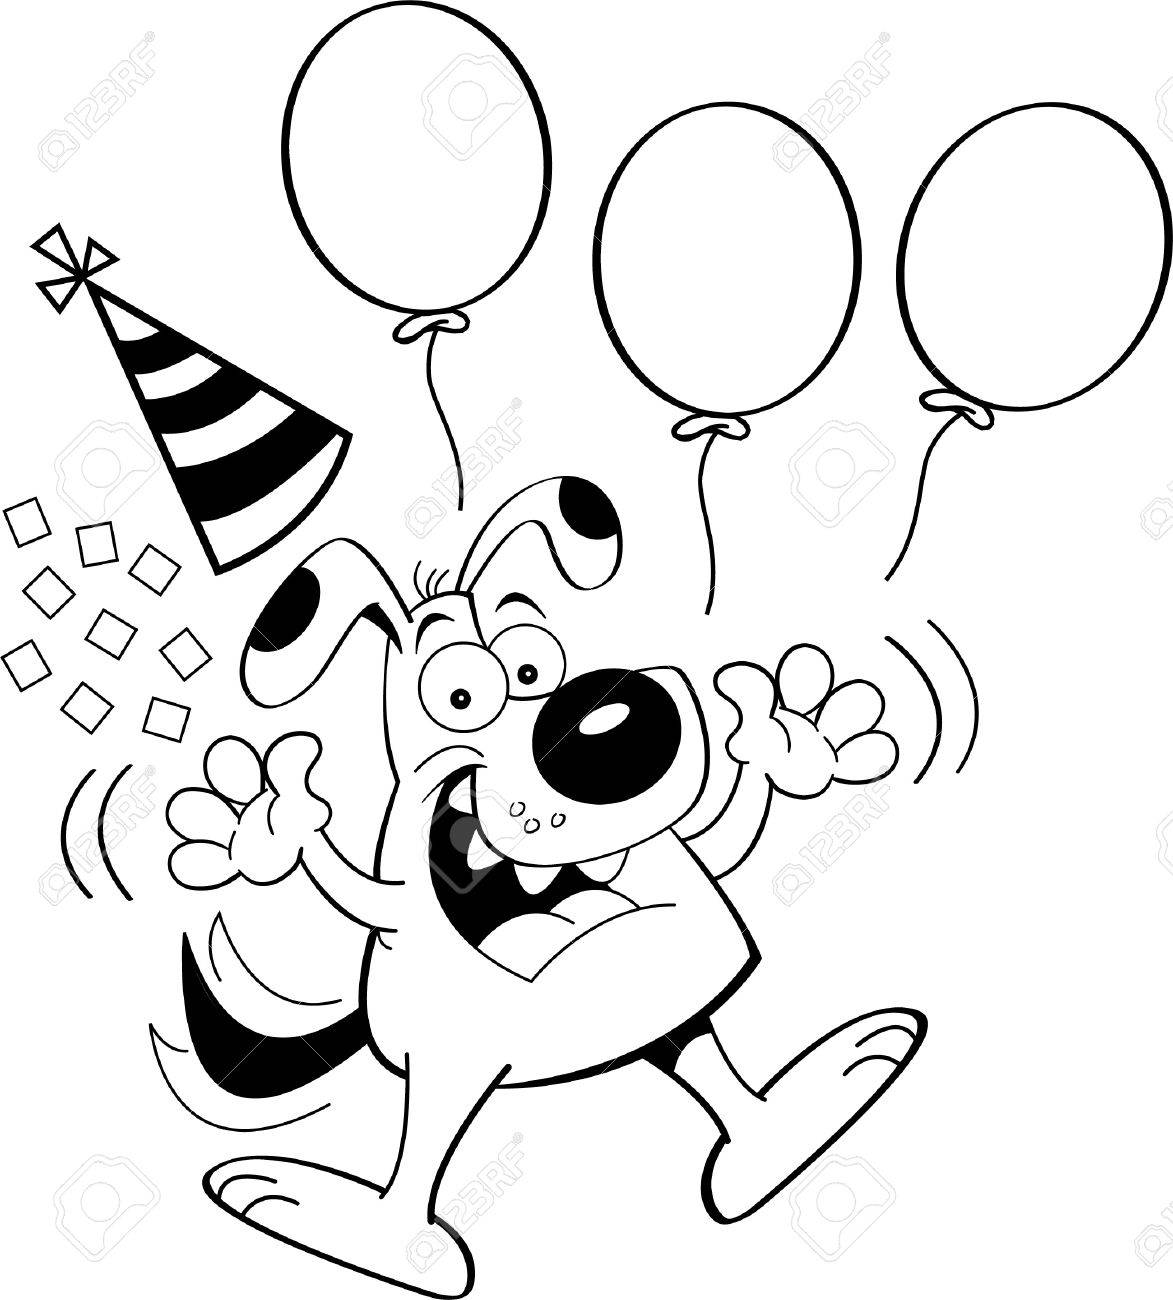 1173x1300 Black White Illustration Of A Dog Jumping With Balloons